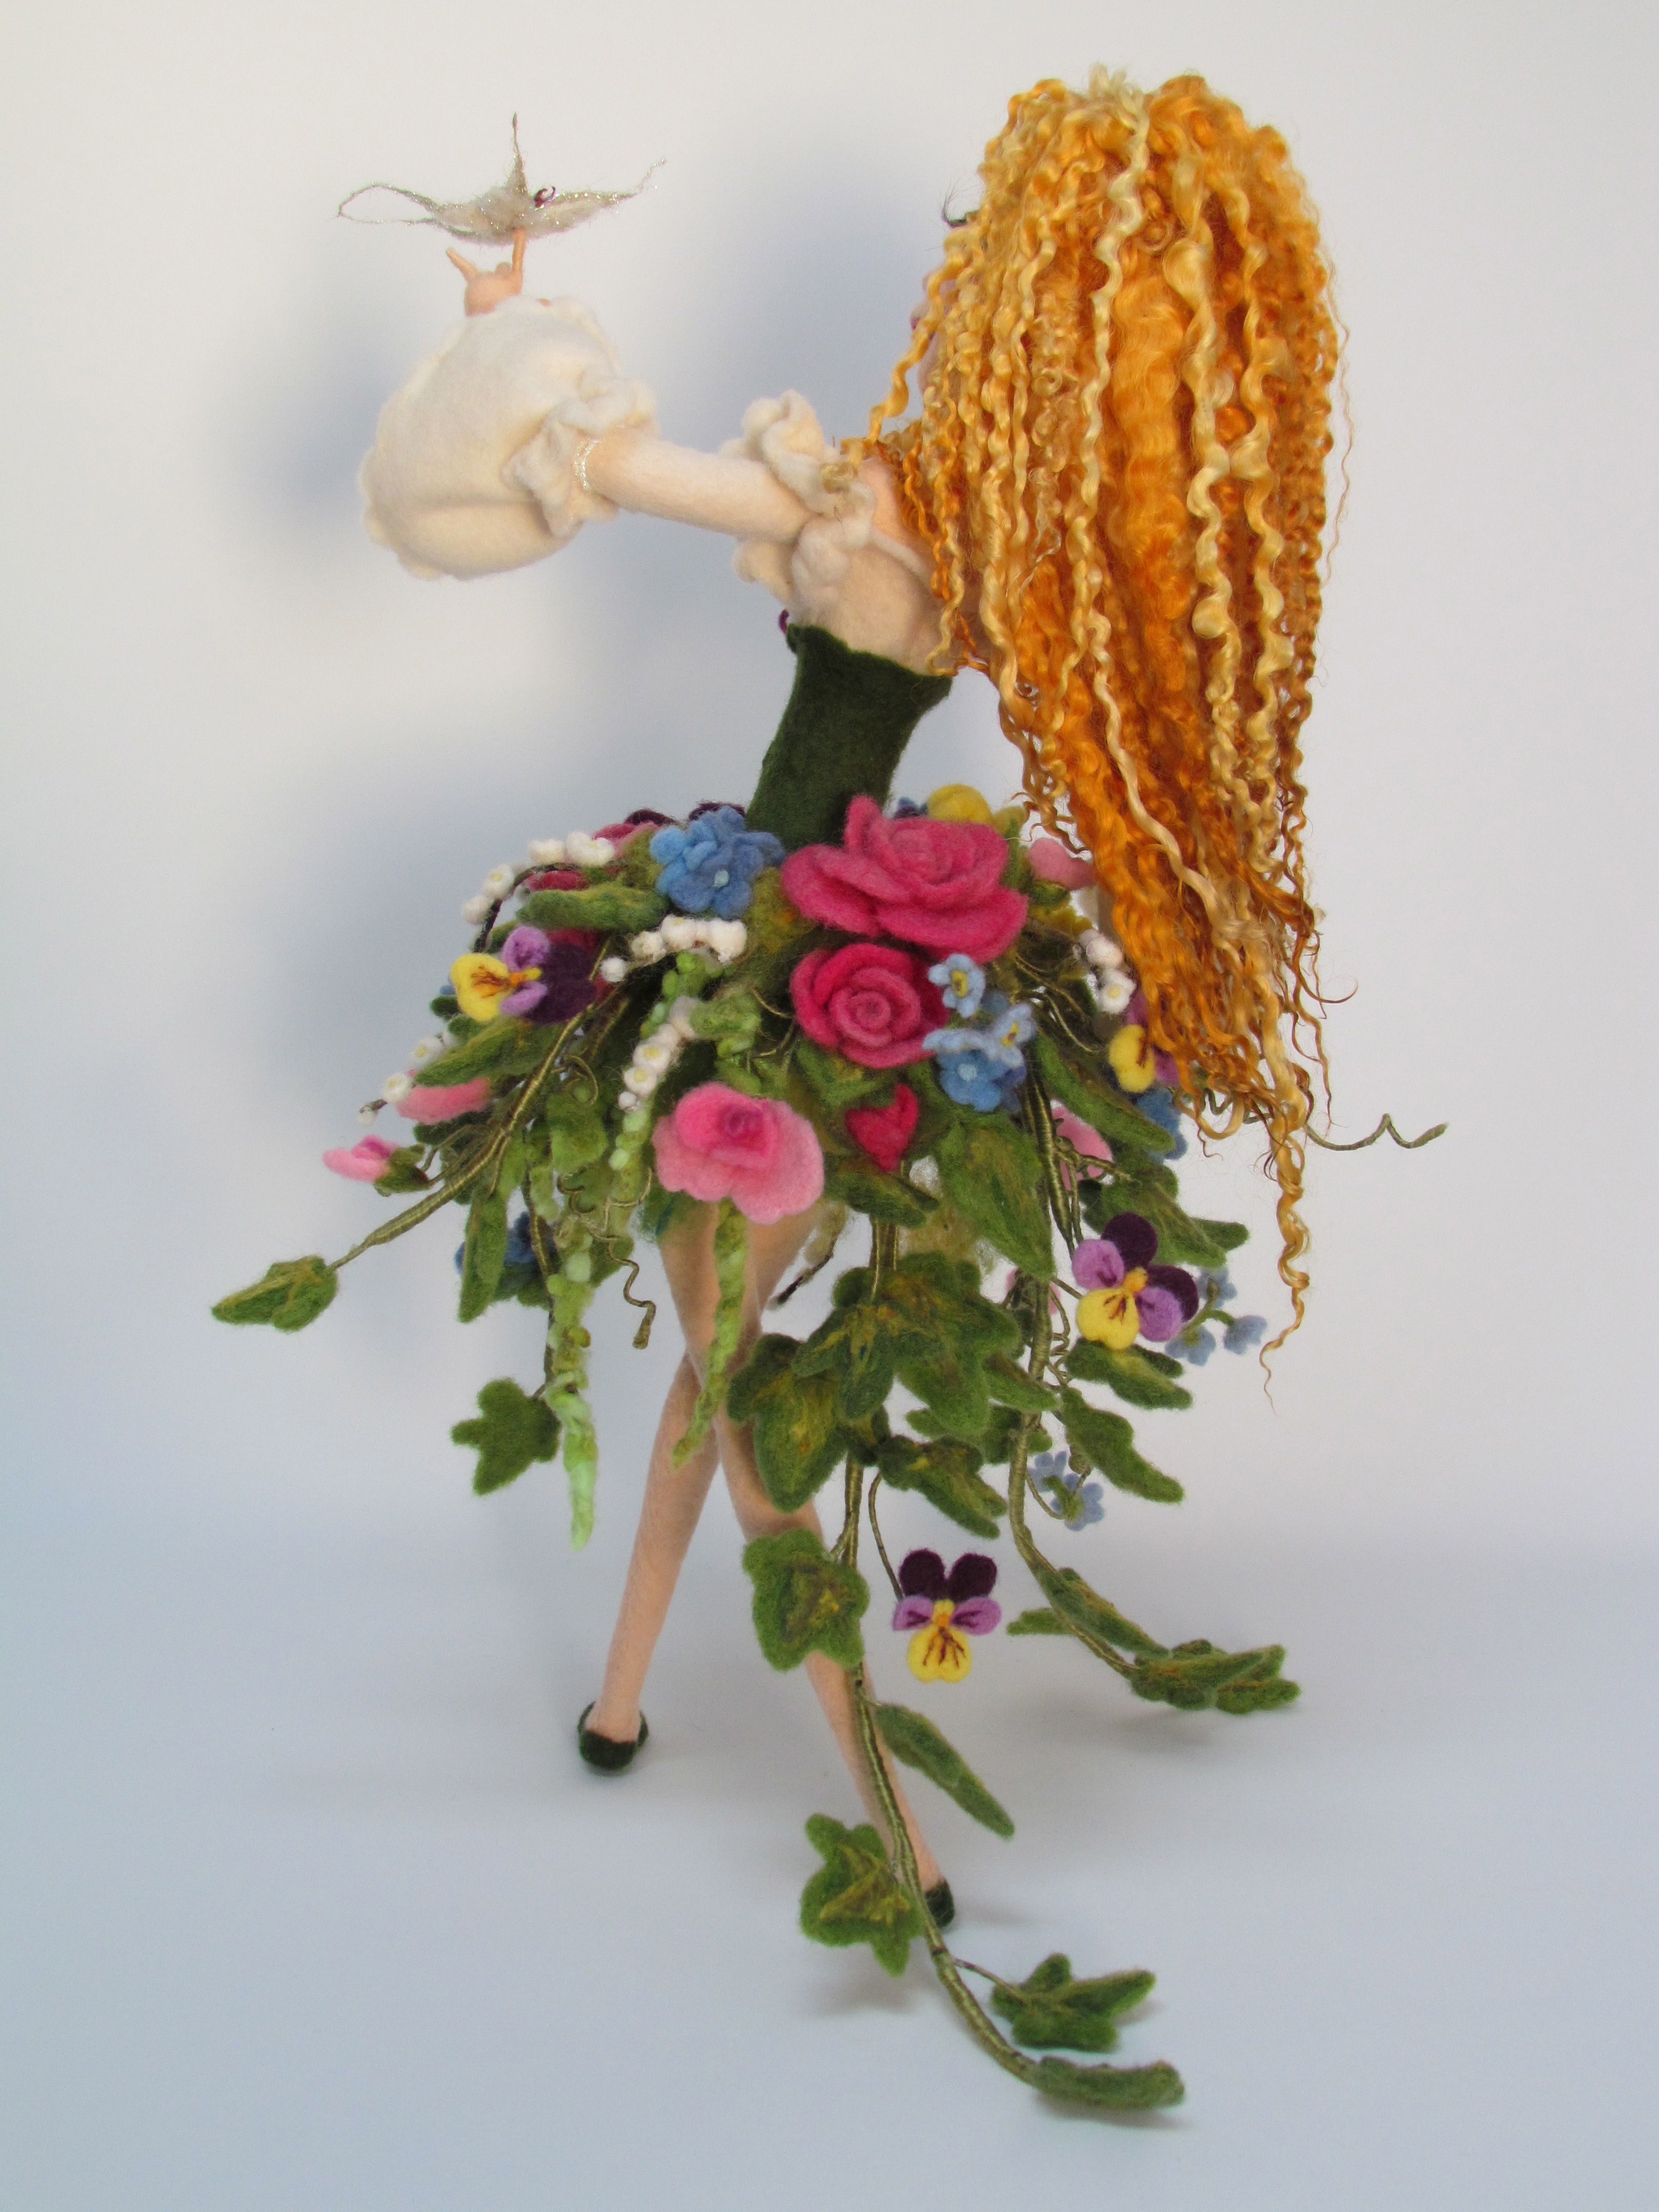 back view - needle felt doll. Lovely extreme teeswater curly locks - about 12 inches long.